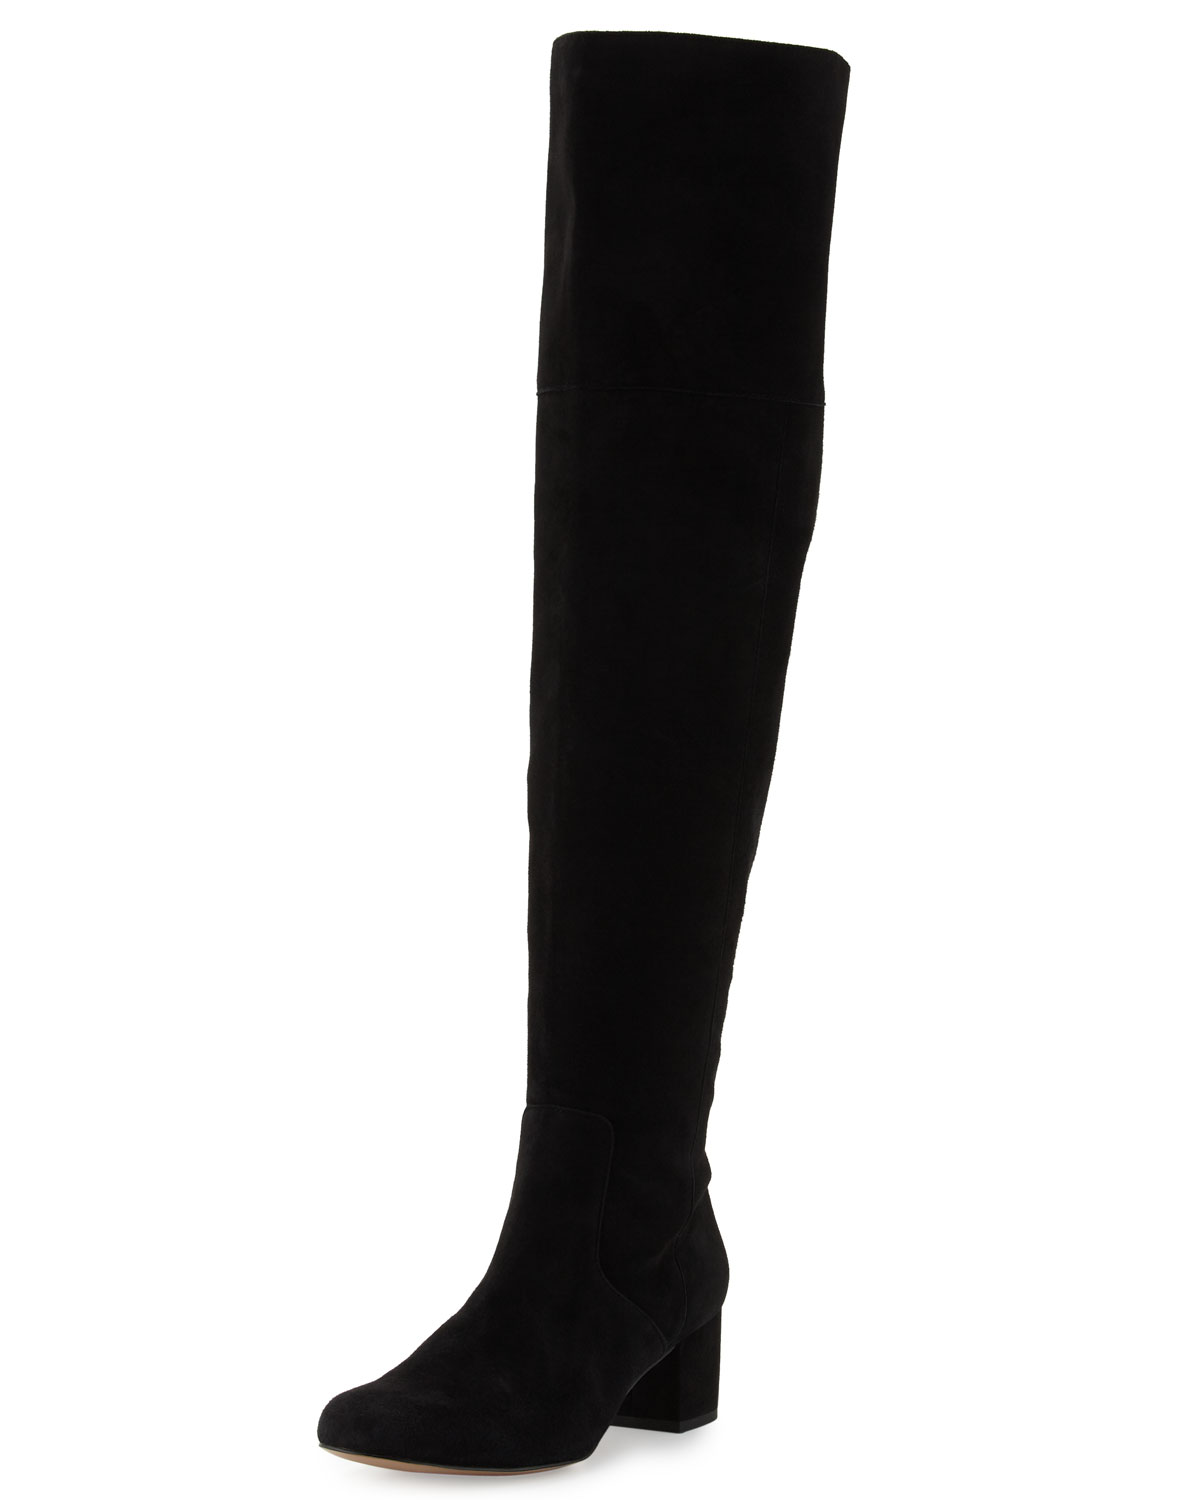 80871746989 Sam Edelman Elina Suede Over-the-Knee Boots